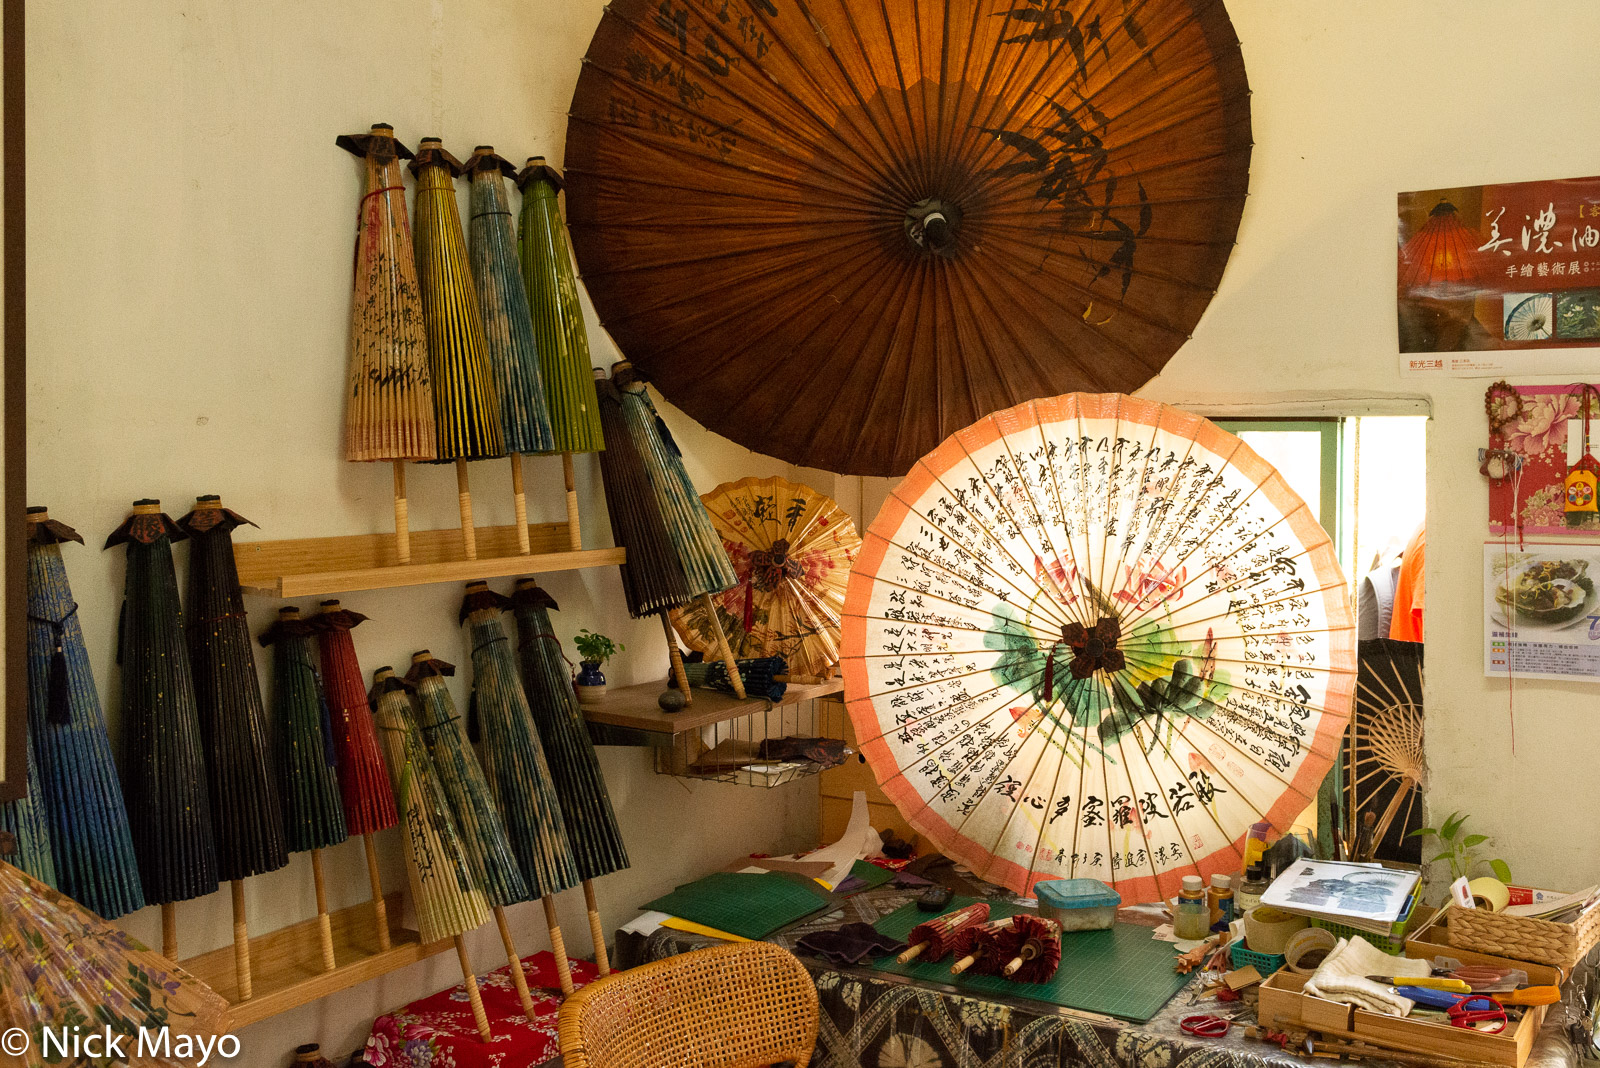 The studio of the Meinong K.C.S. Umbrella company, makers of traditional hand manufactured paper umbrellas.